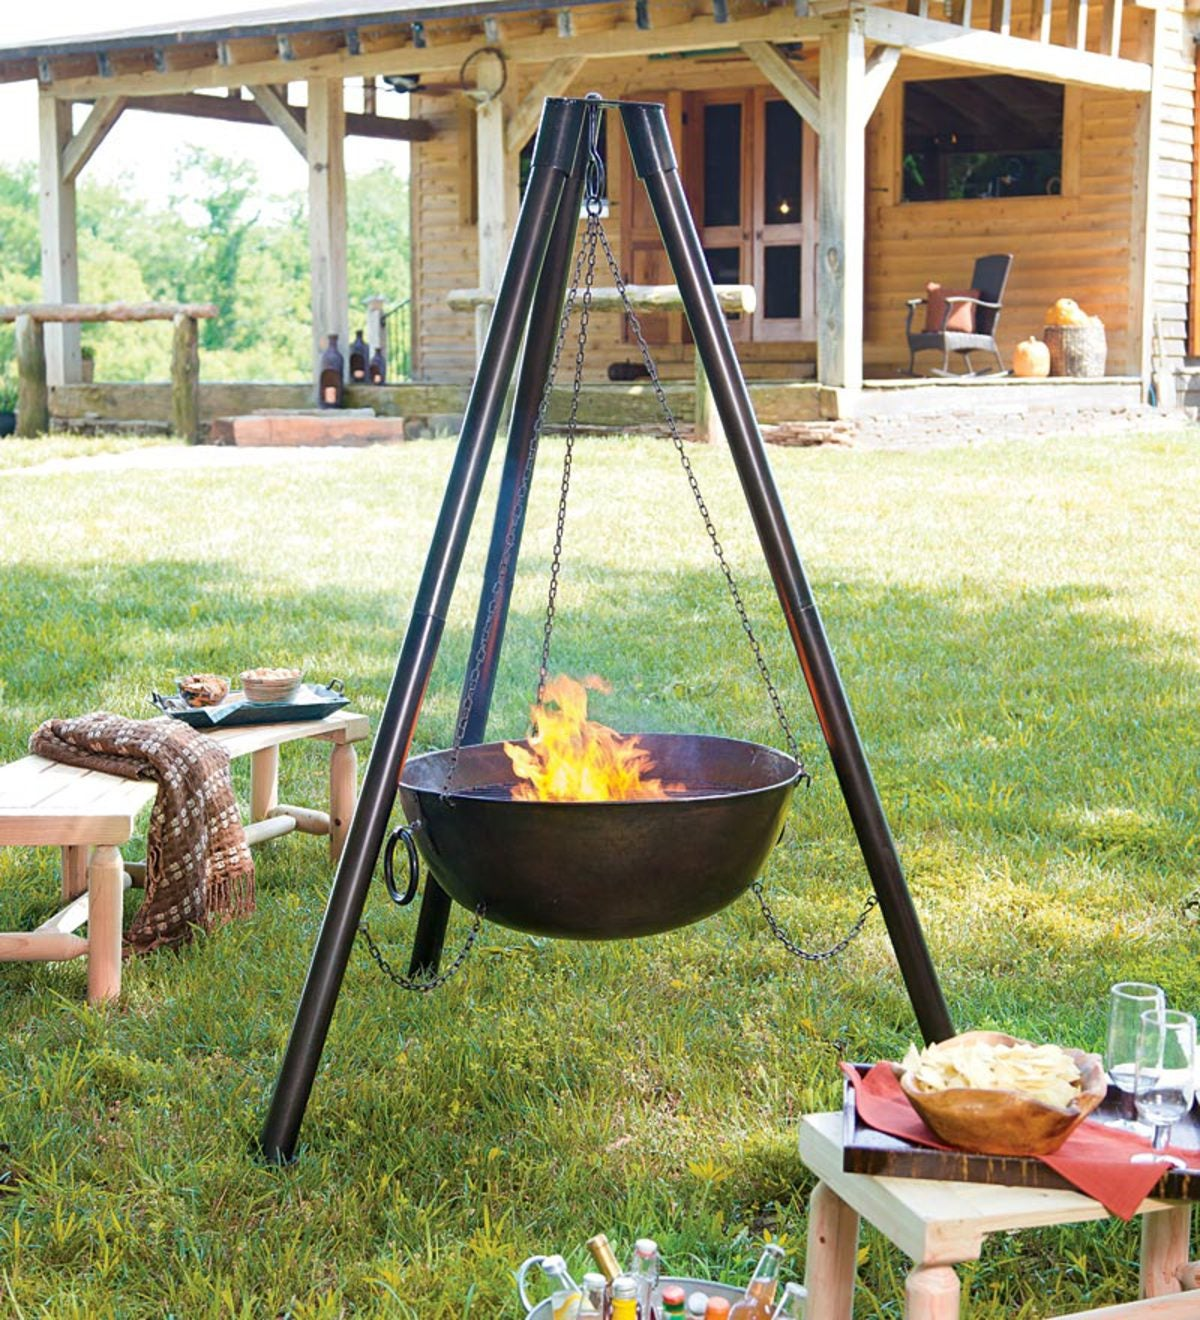 Steel Campfire Cauldron Tripod Fire Pit With Cooking Grill ...